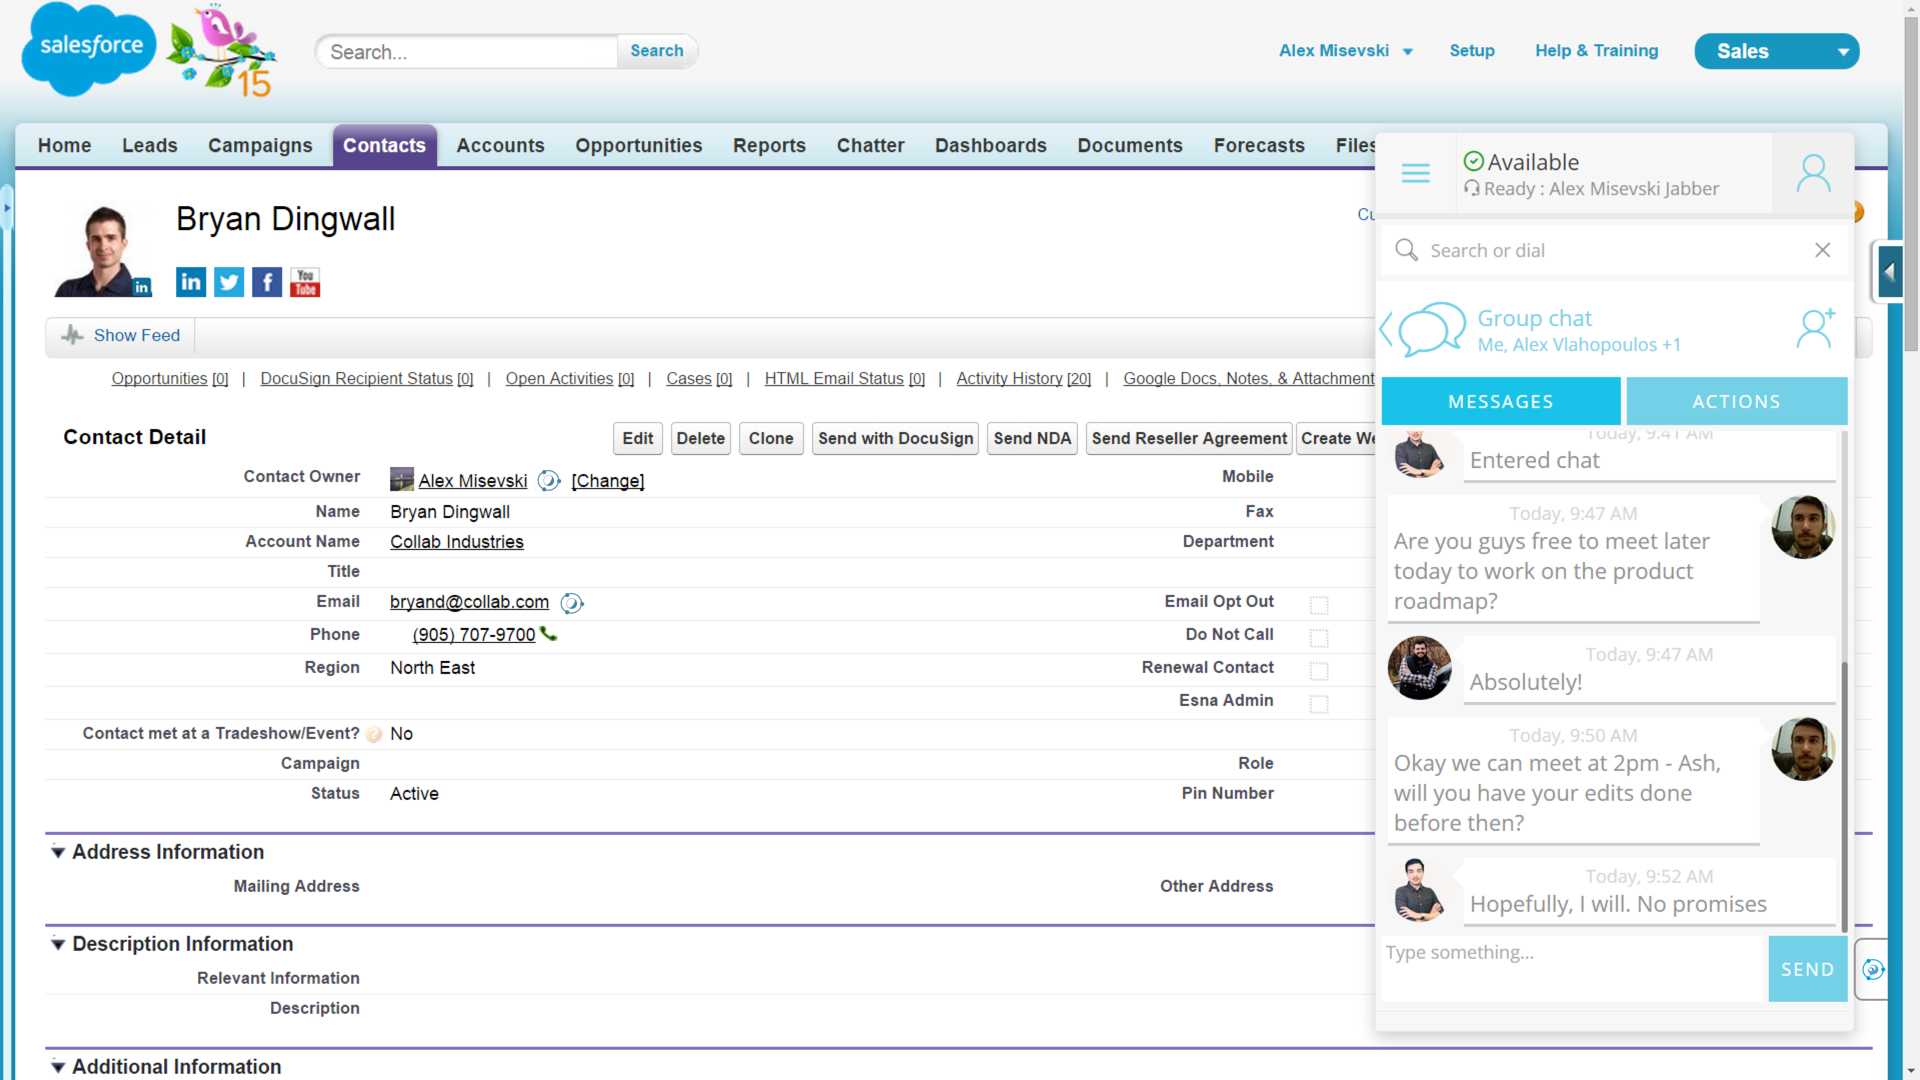 Guy chatting 1-on-1 with entire team in salesforce using cisco jabber